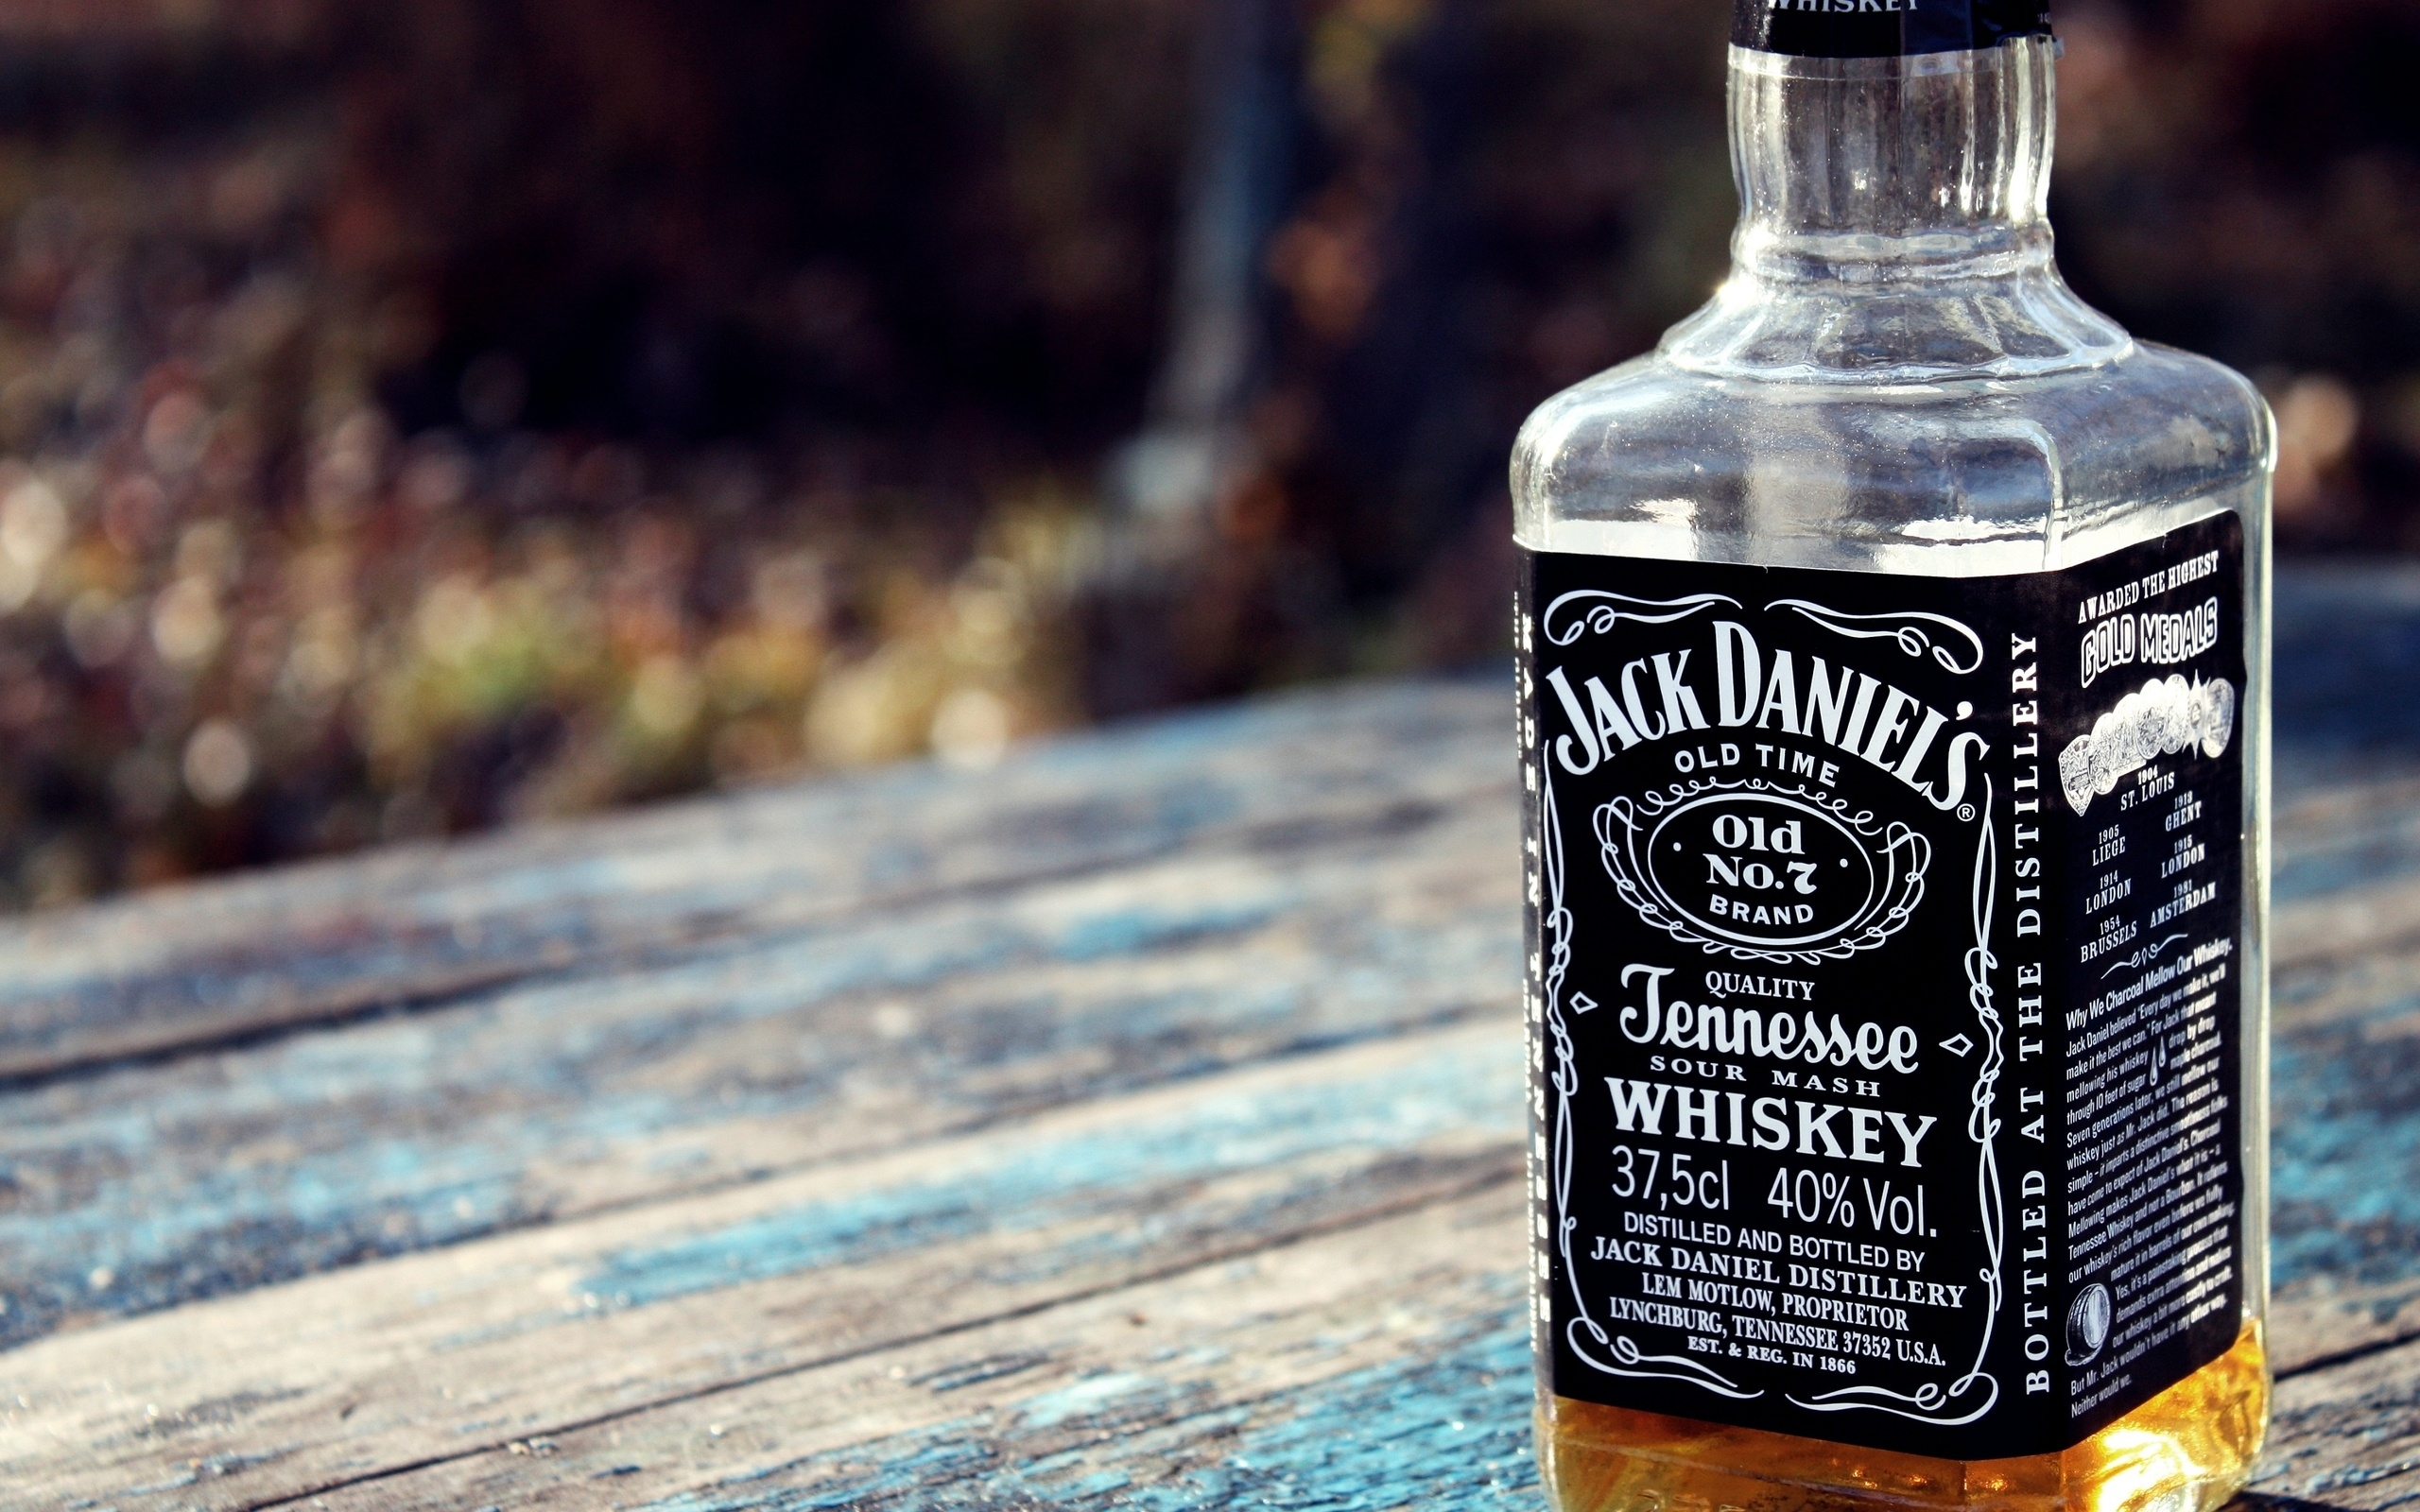 1280x2120 Jack Daniels Whiskey Alcohol Iphone 6 Plus Wallpaper Hd Brands 4k Wallpapers Images Photos And Background